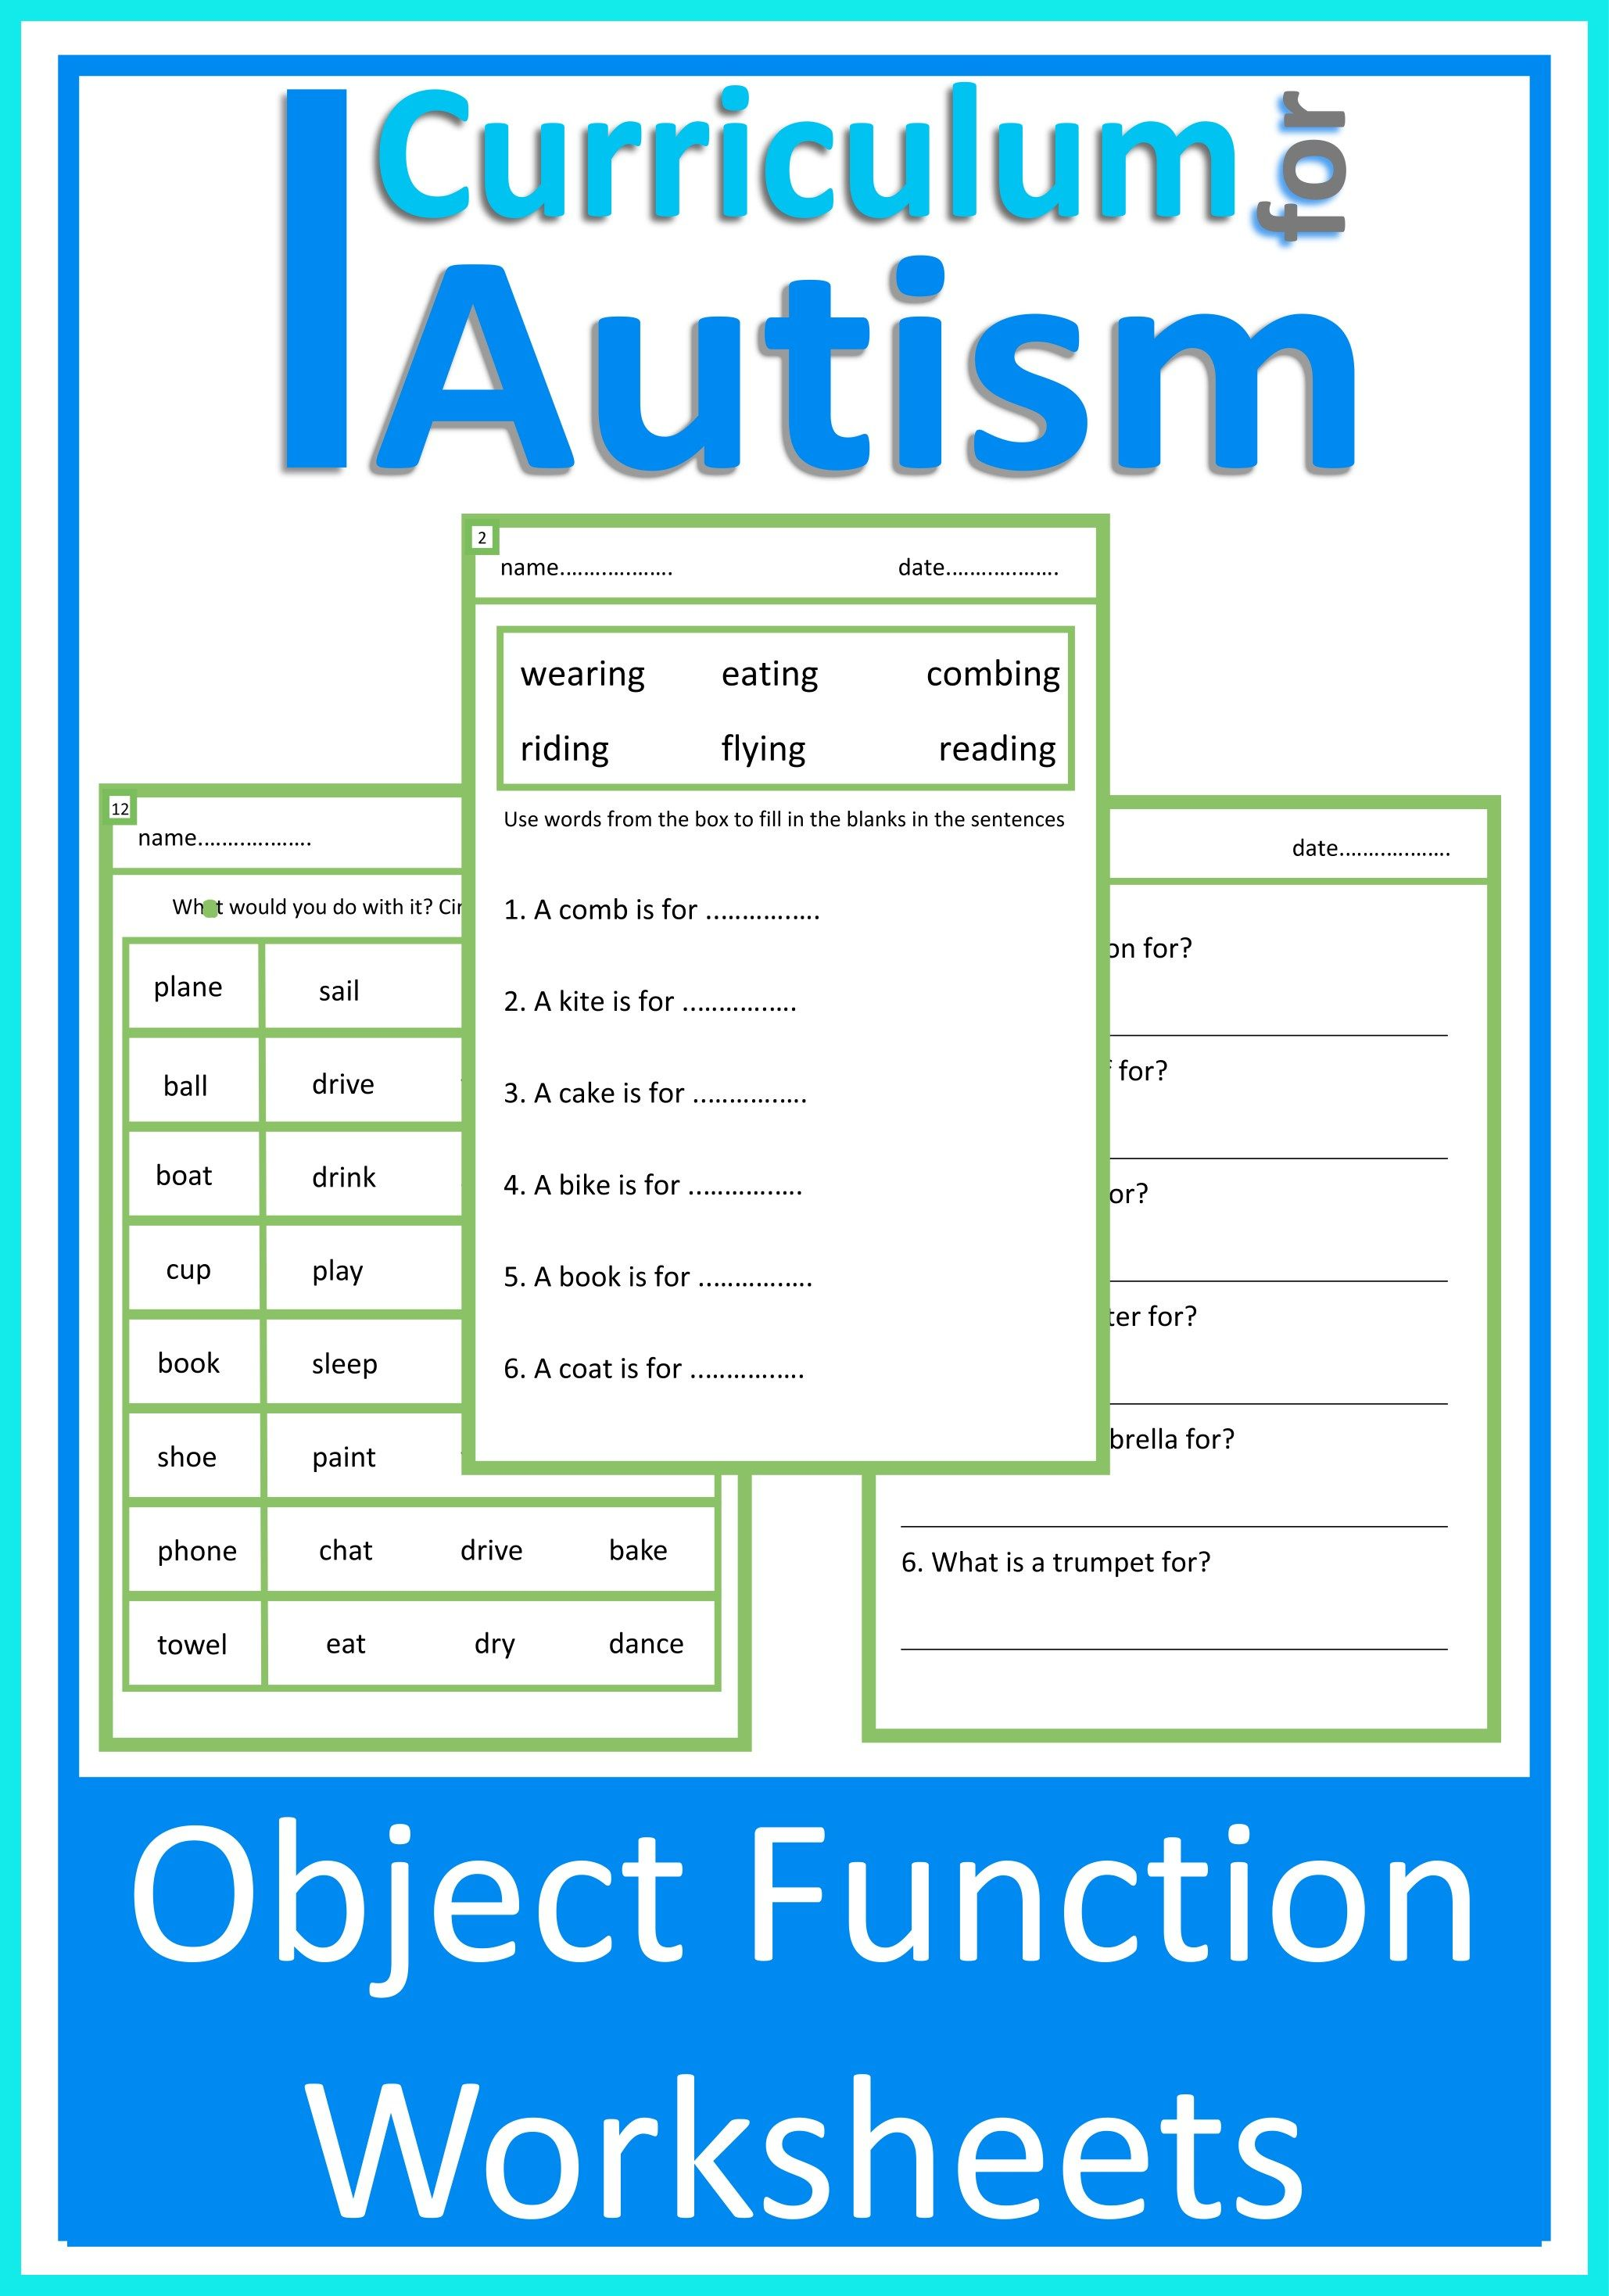 Object Function Worksheets